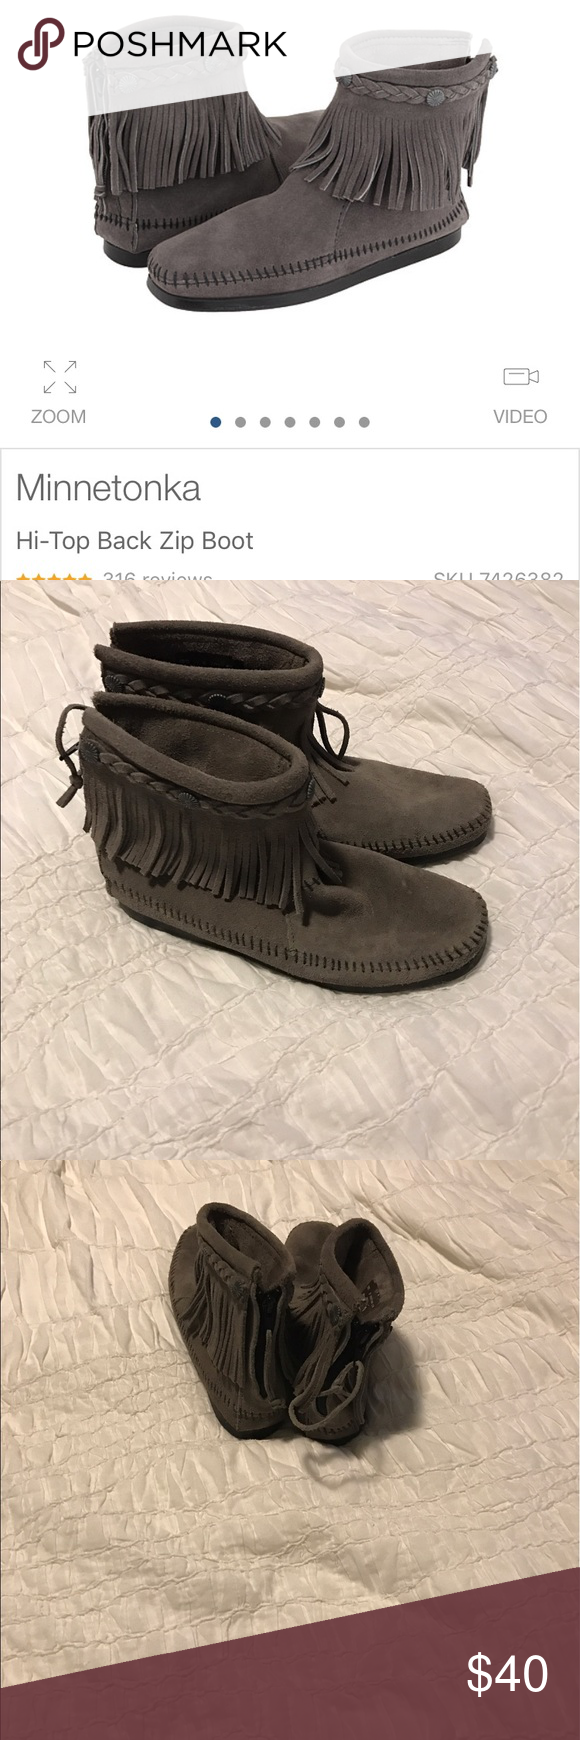 Minnetonka Hi-Top Back Zip Boot Size 8. Only worn two times. So comfy and adorable. Minnetonka Shoes Moccasins